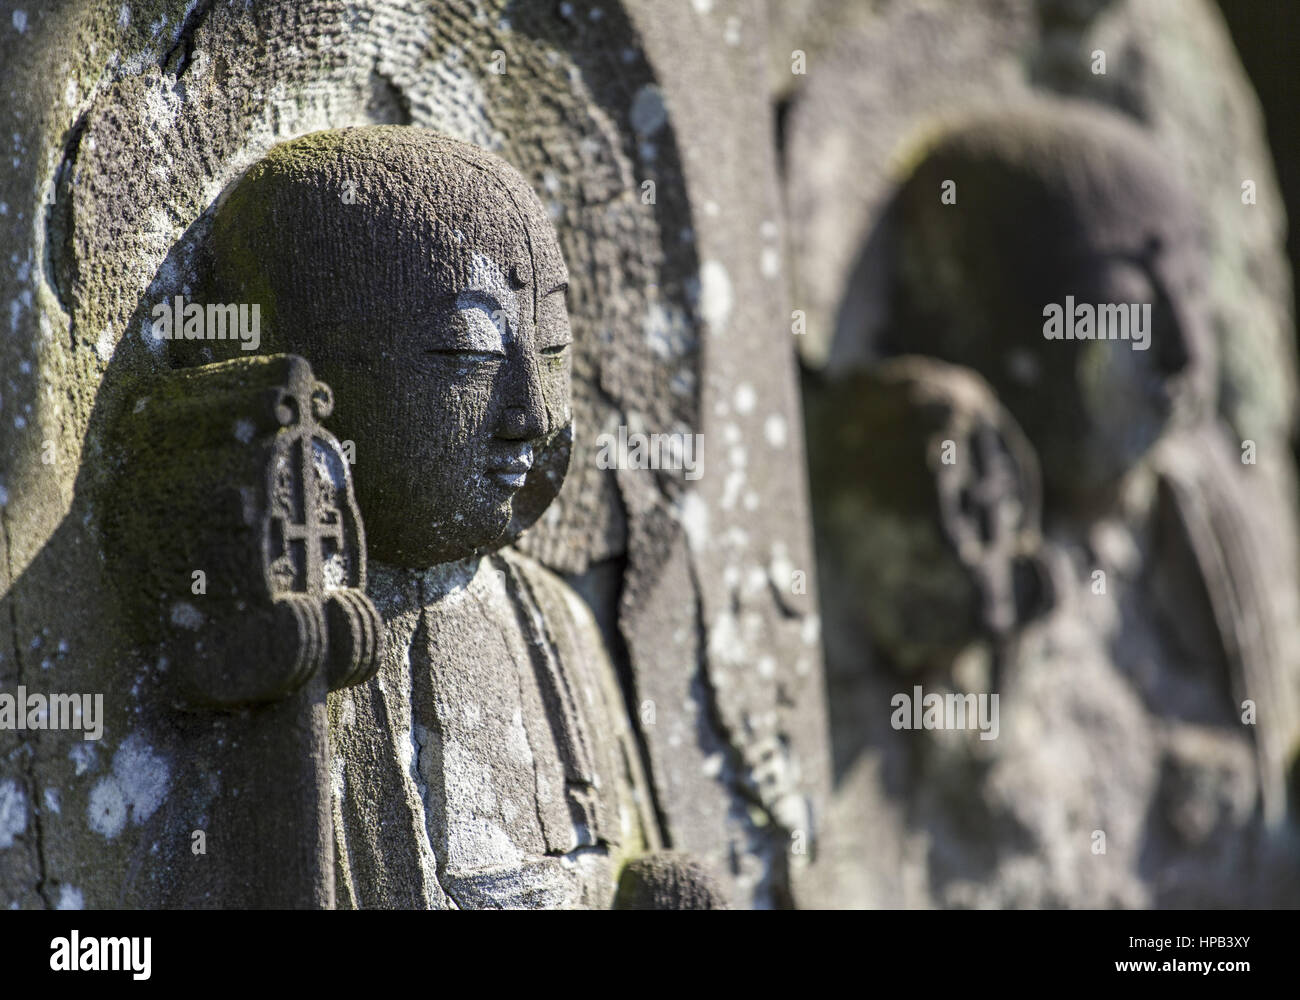 Buddhistischer Grabstein, Tokio, Japan - Stock Image